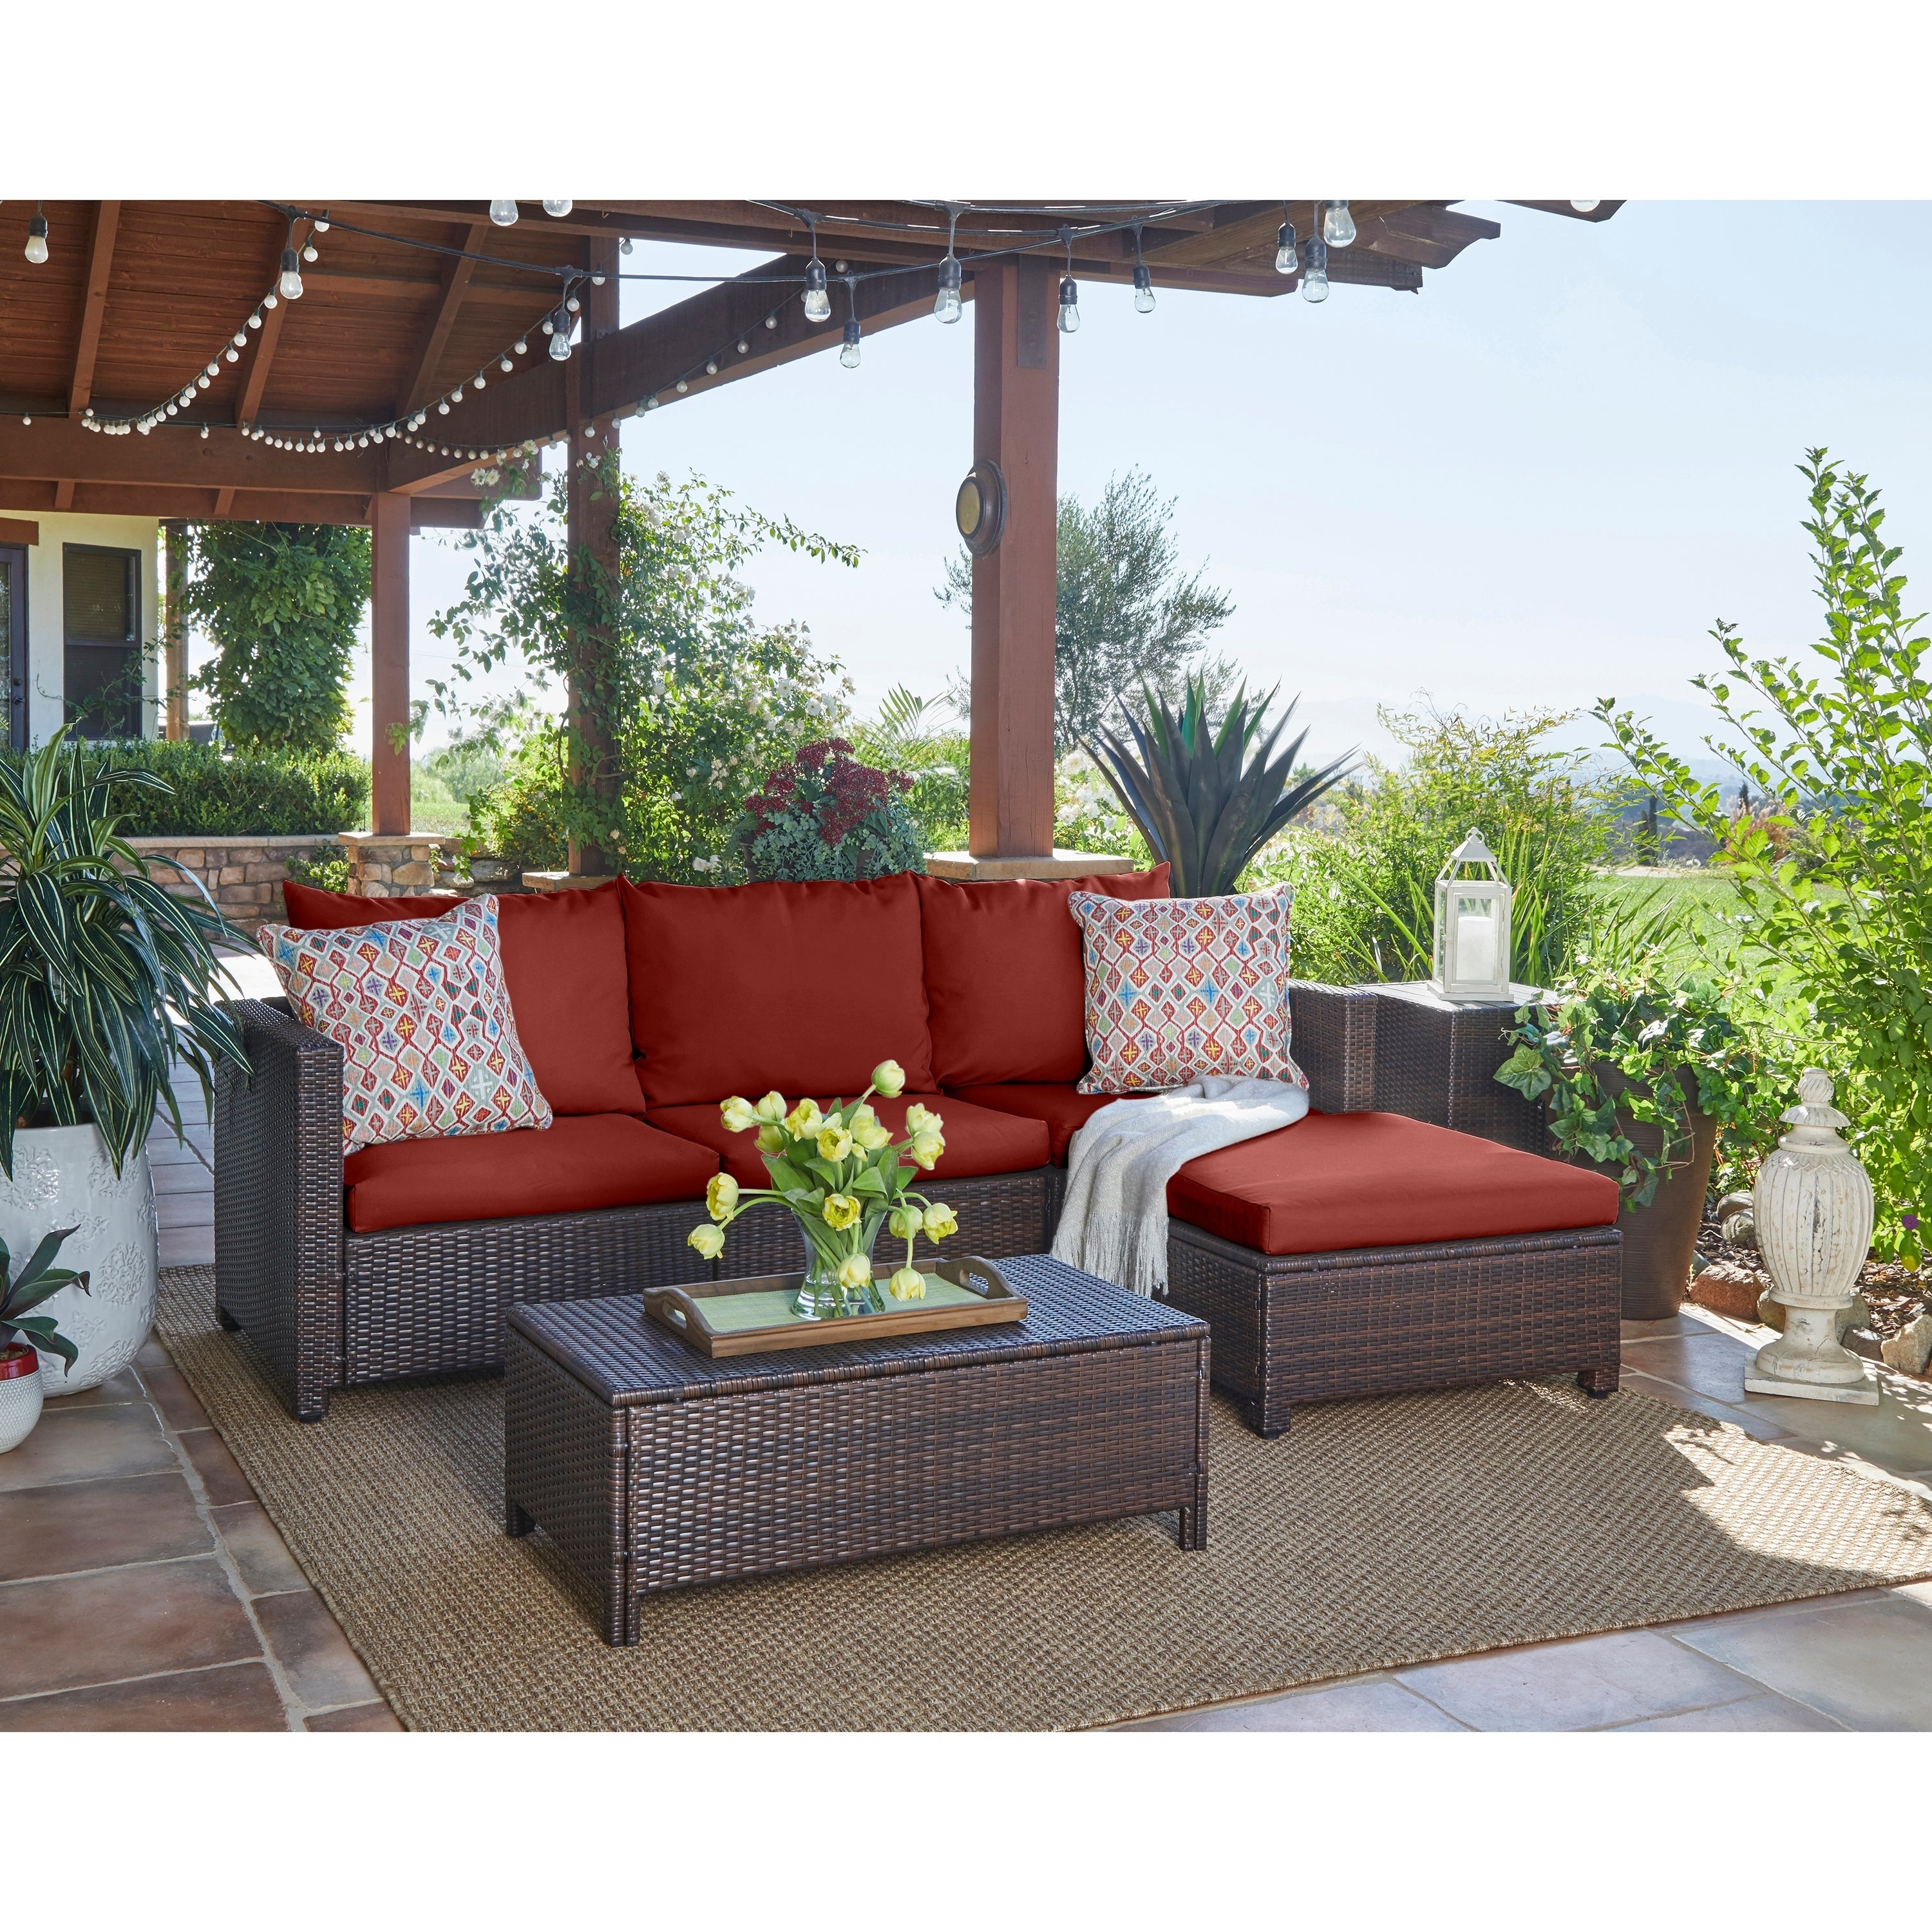 Most Current Havenside Home Stillwater Indoor/outdoor Brown Resin Rattan Sectional With  Table And Terracotta Cushions Within Tess Corner Living Patio Sectionals With Cushions (View 7 of 20)